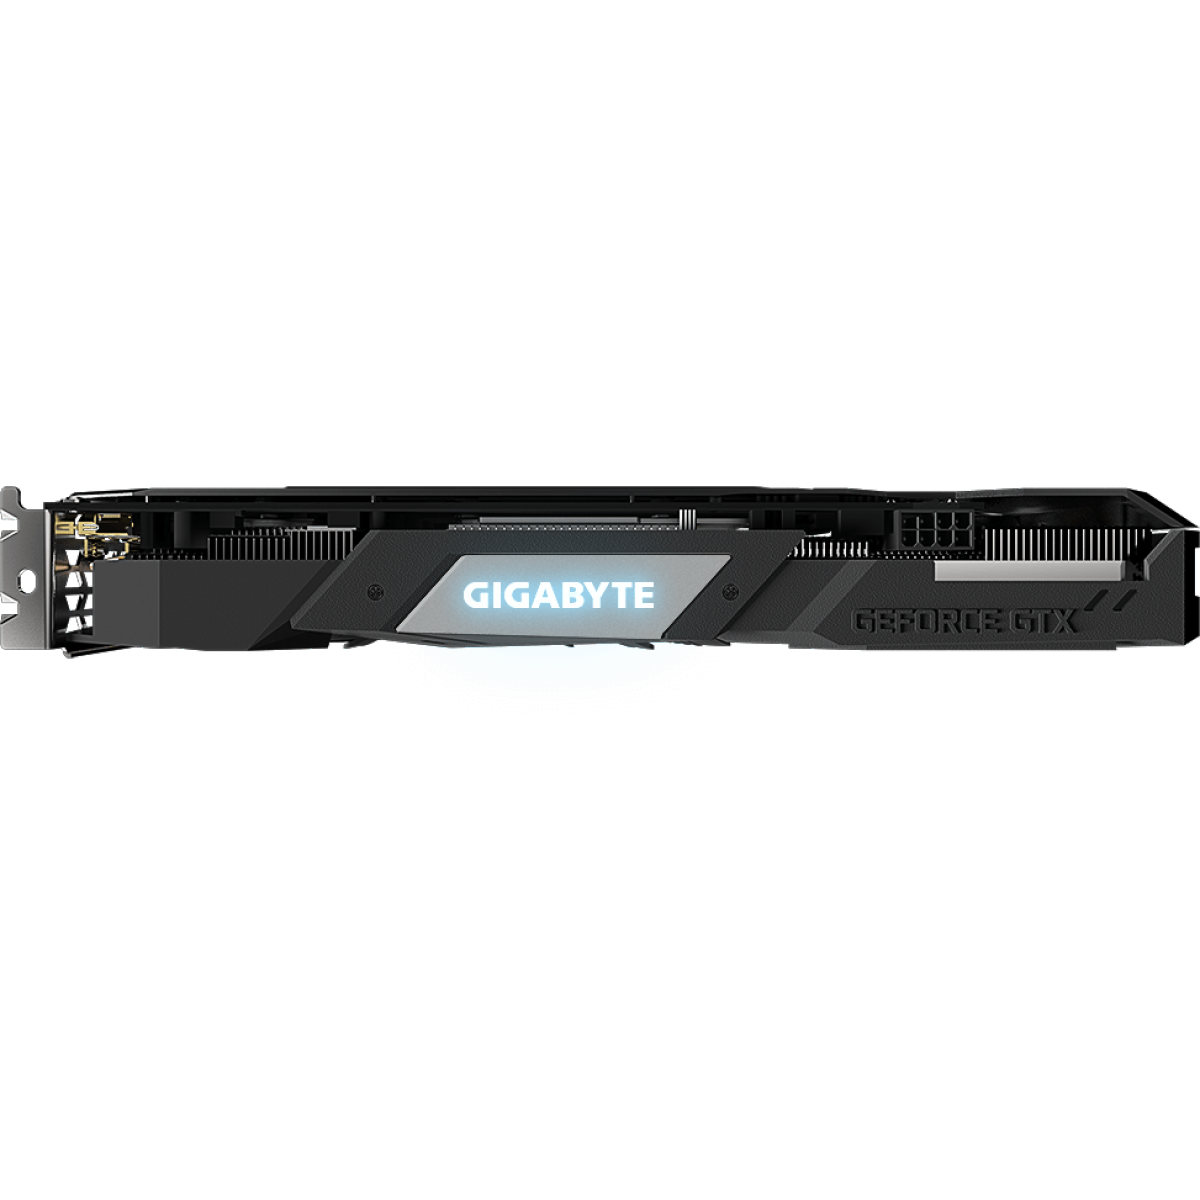 Placa de Vídeo Gigabyte NVIDIA GeForce GTX 1660 Super Gaming OC, 6GB, GDDR6, 192 Bit, GV-N166SGAMING OC -6GD